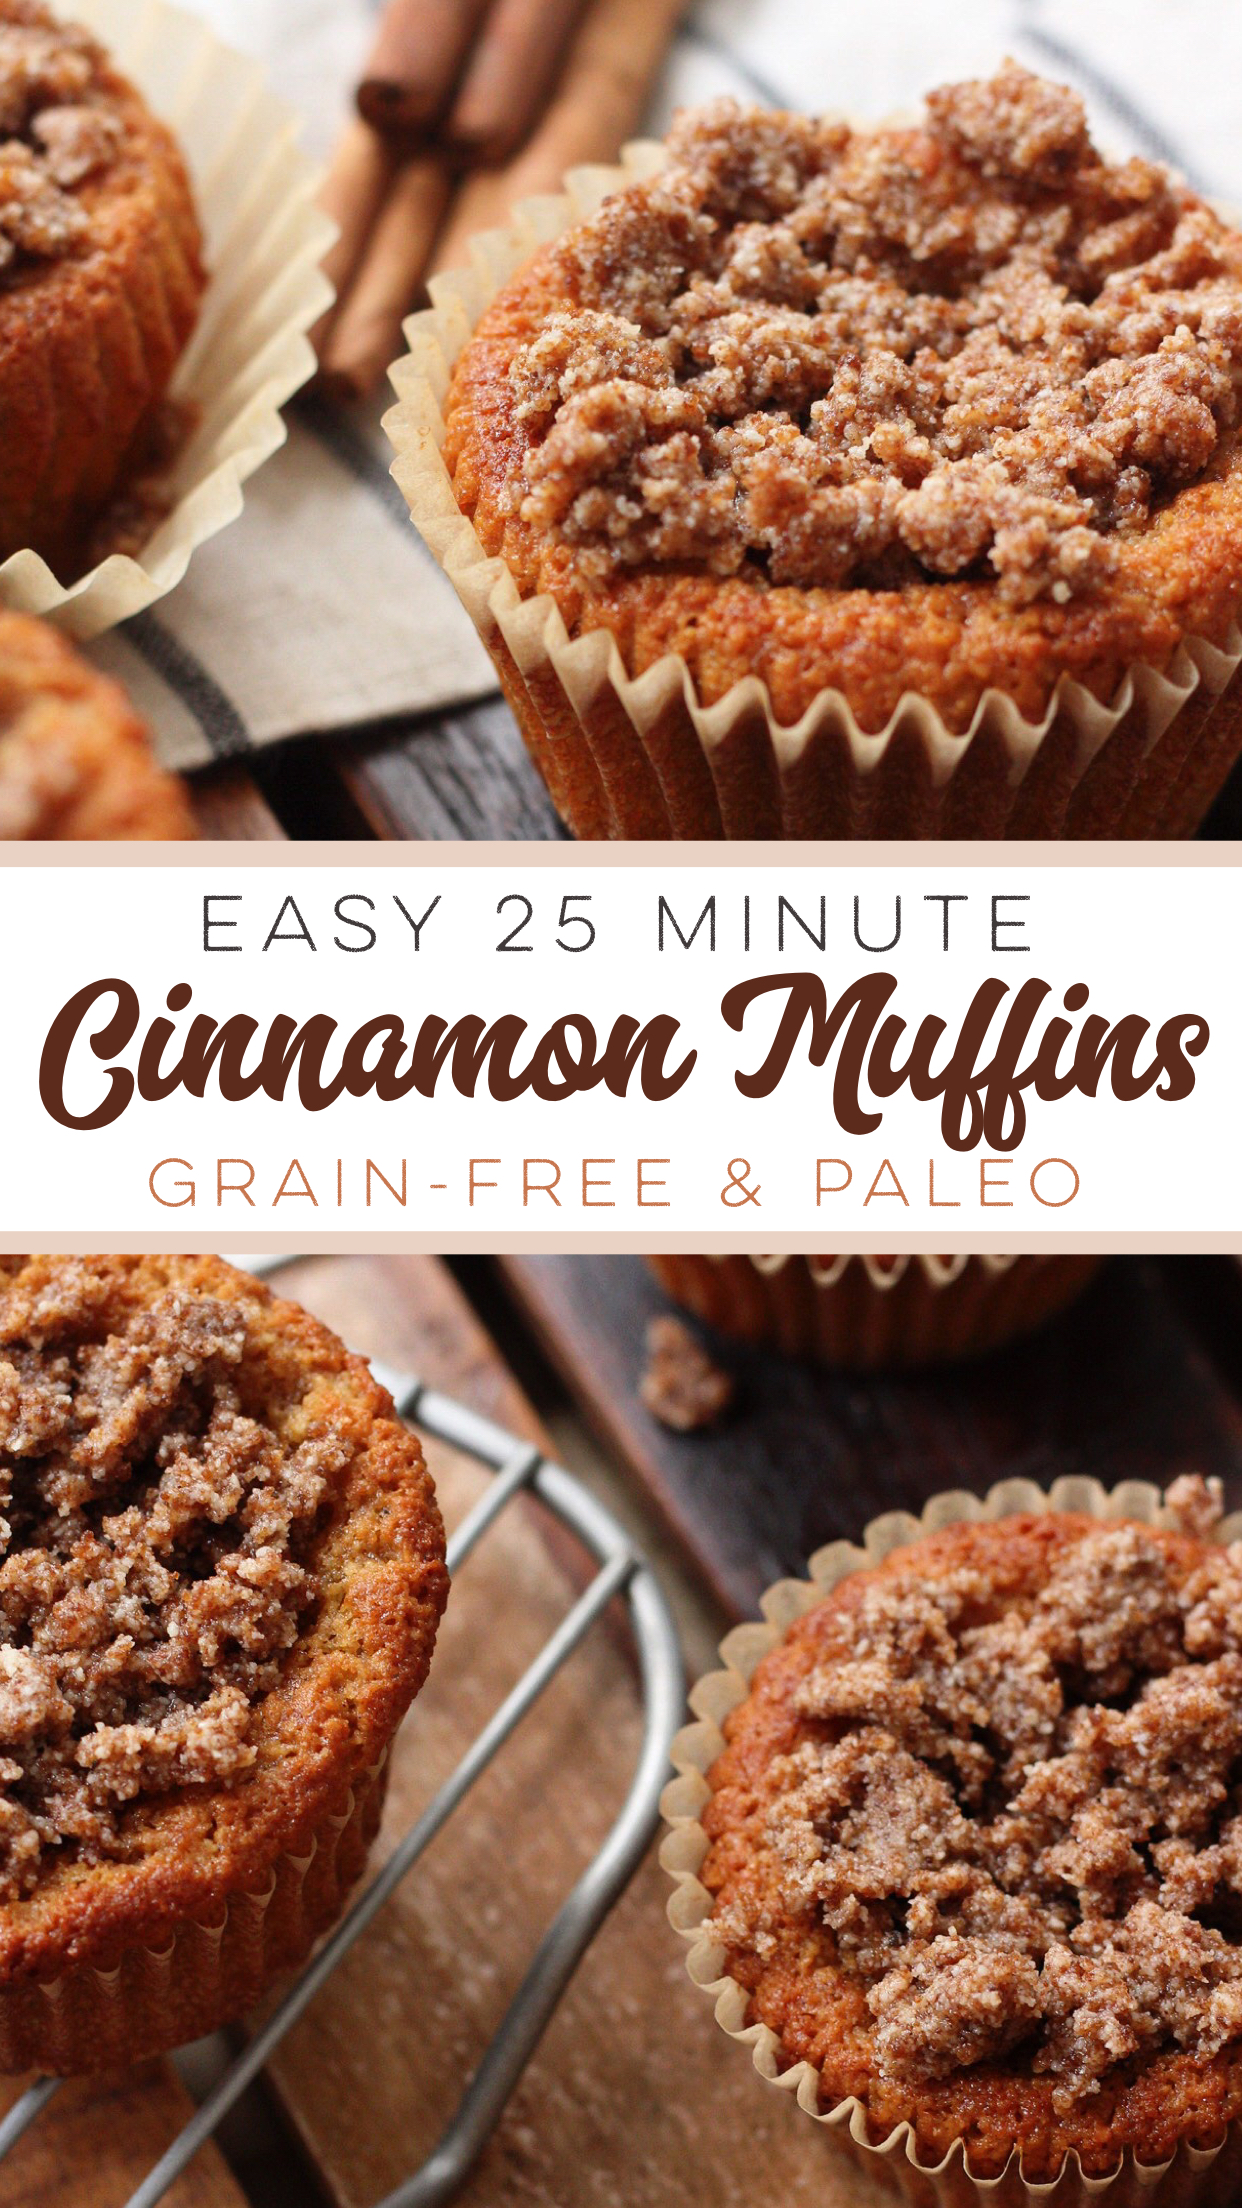 These grain free and Paleo Cinnamon Muffins are a 25 minute, delicious, family friendly recipe. This easy paleo cinnamon muffins recipe make it easy to make healthier choices, because they're so dang good! #paleomuffins #paleocinnamonmuffins #grainfreemuffins #paleomuffinrecipes